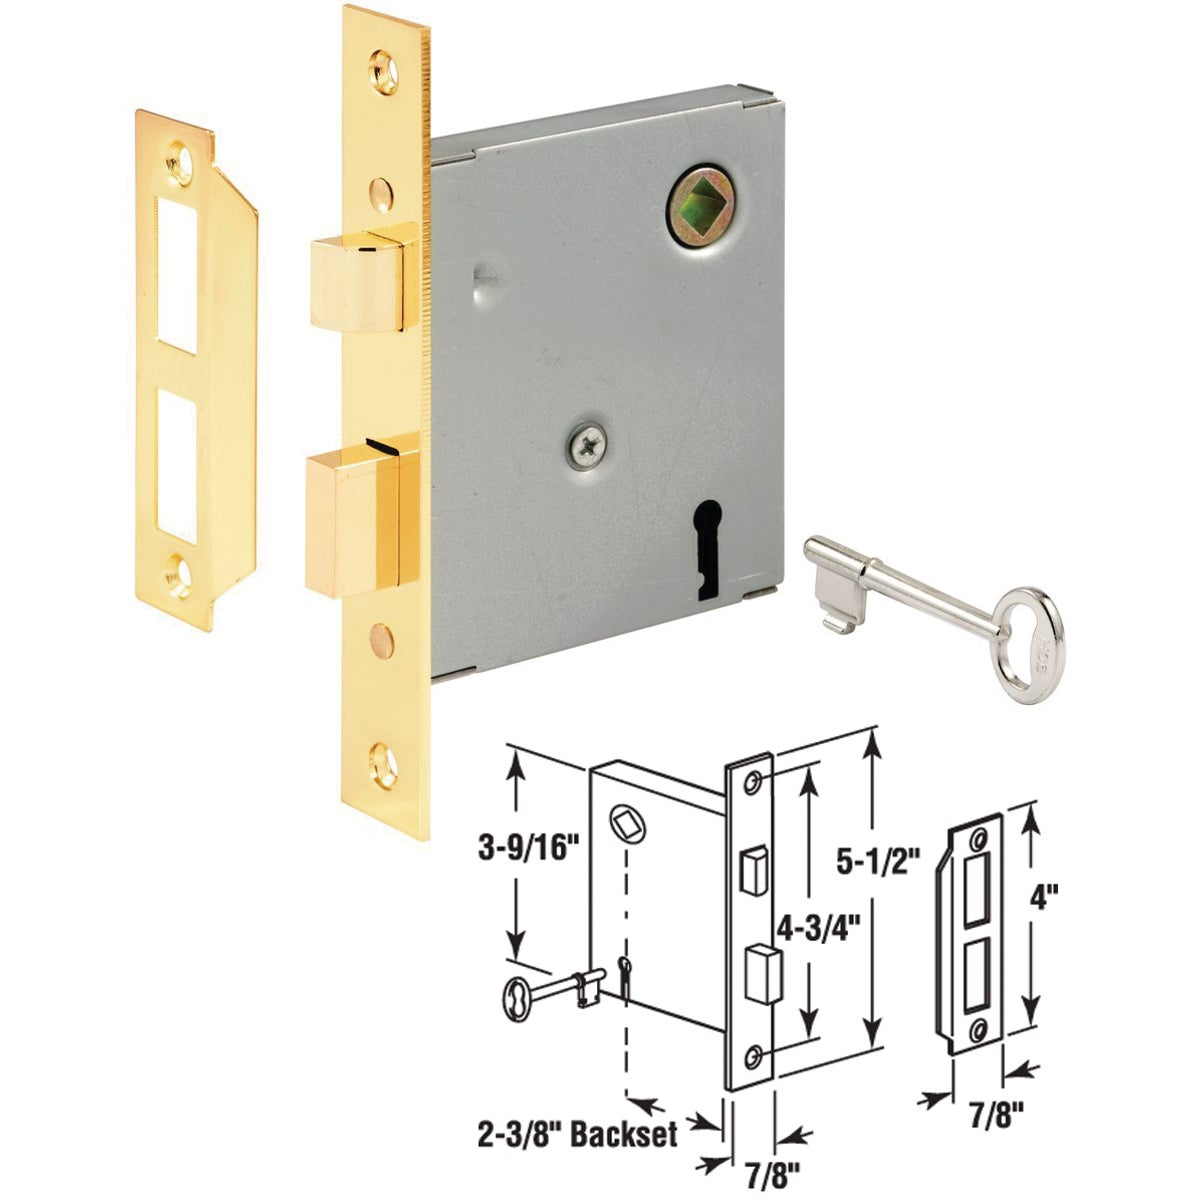 BIT KEY MORTISE LOCK